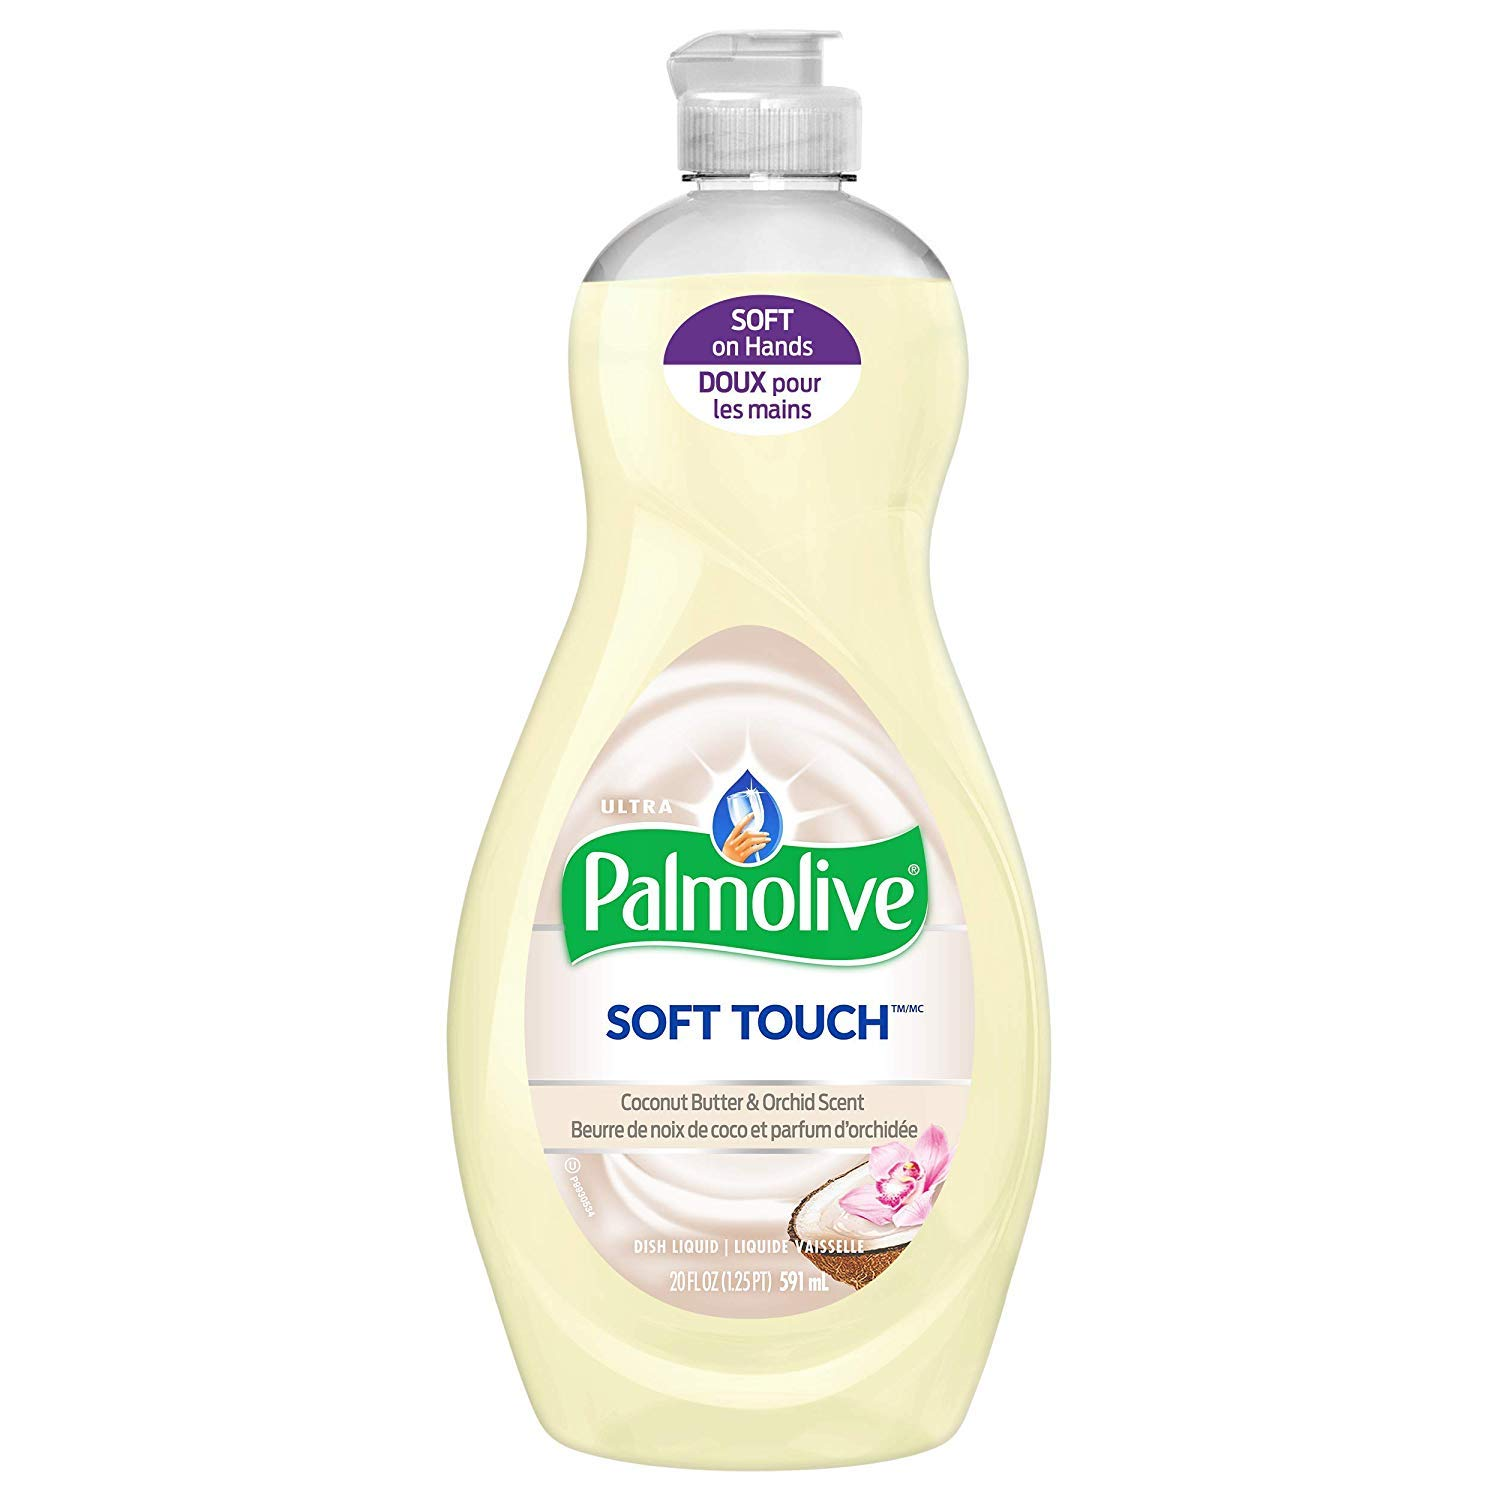 Palmolive Ultra Soft Touch Liquid Dish Soap | Soft Touch on Hands | Tough-on-Grease | Concentrated Formula | Coconut Butter & Orchid Scent - 20 Ounce Bottle (Pack of 2)